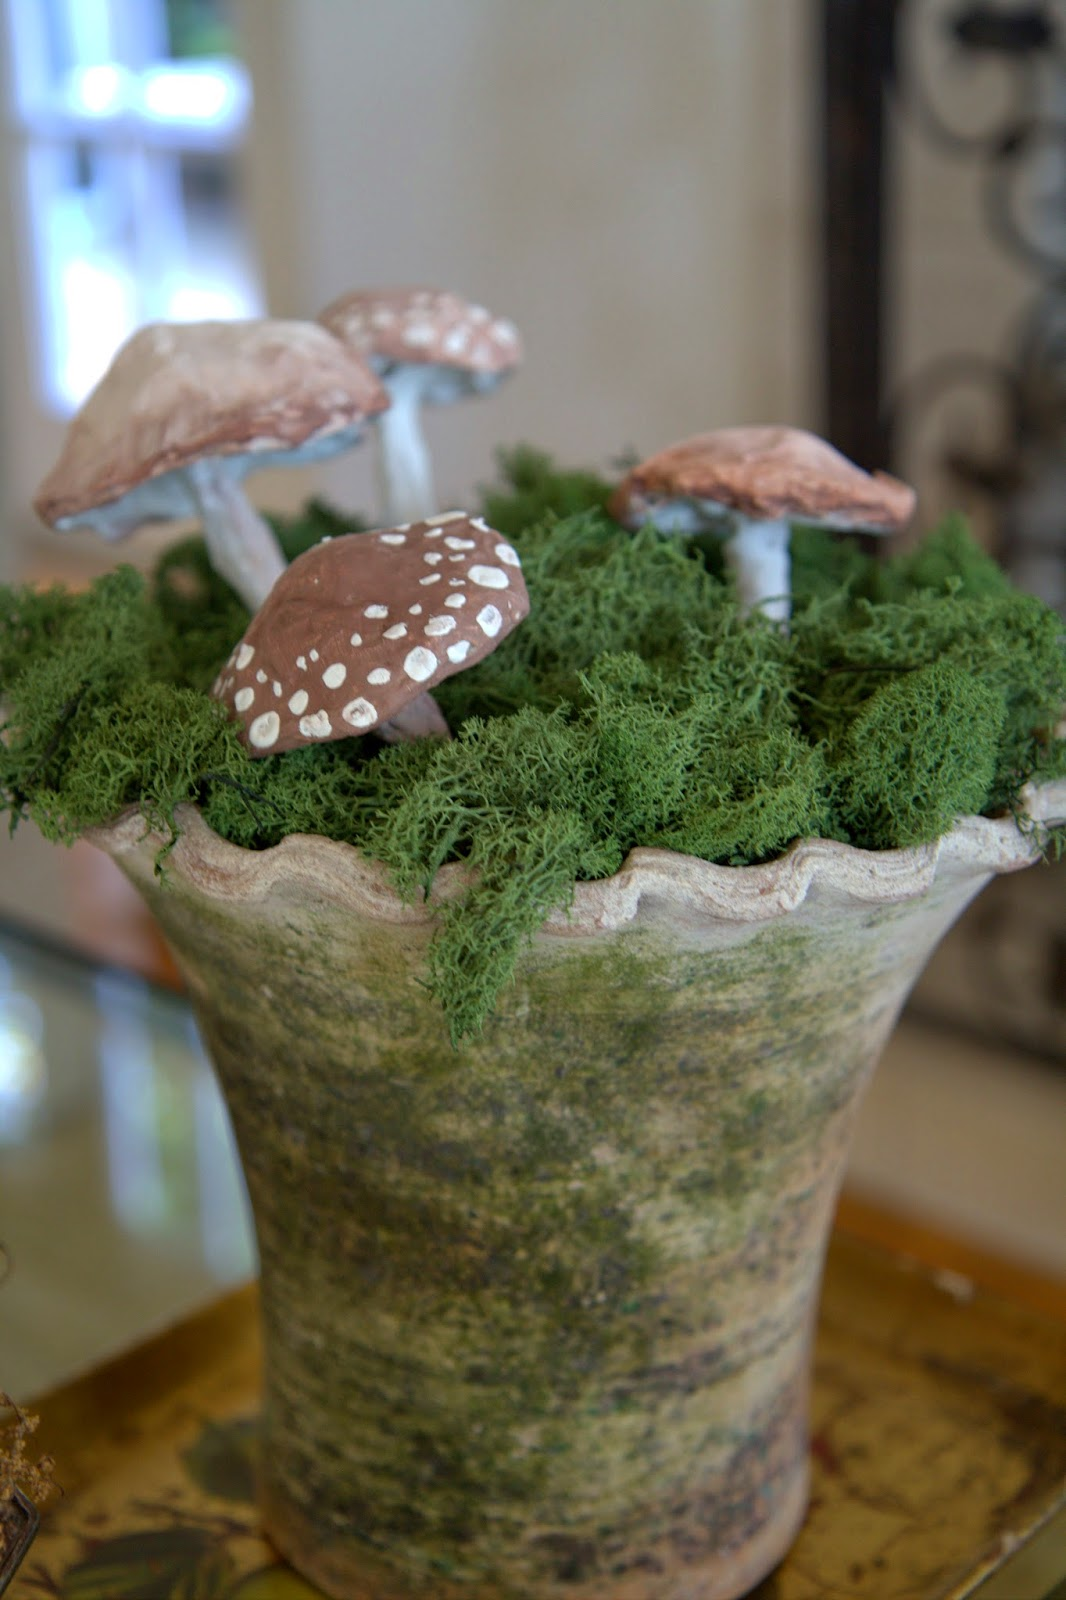 Paper Mache Mushrooms in Moss